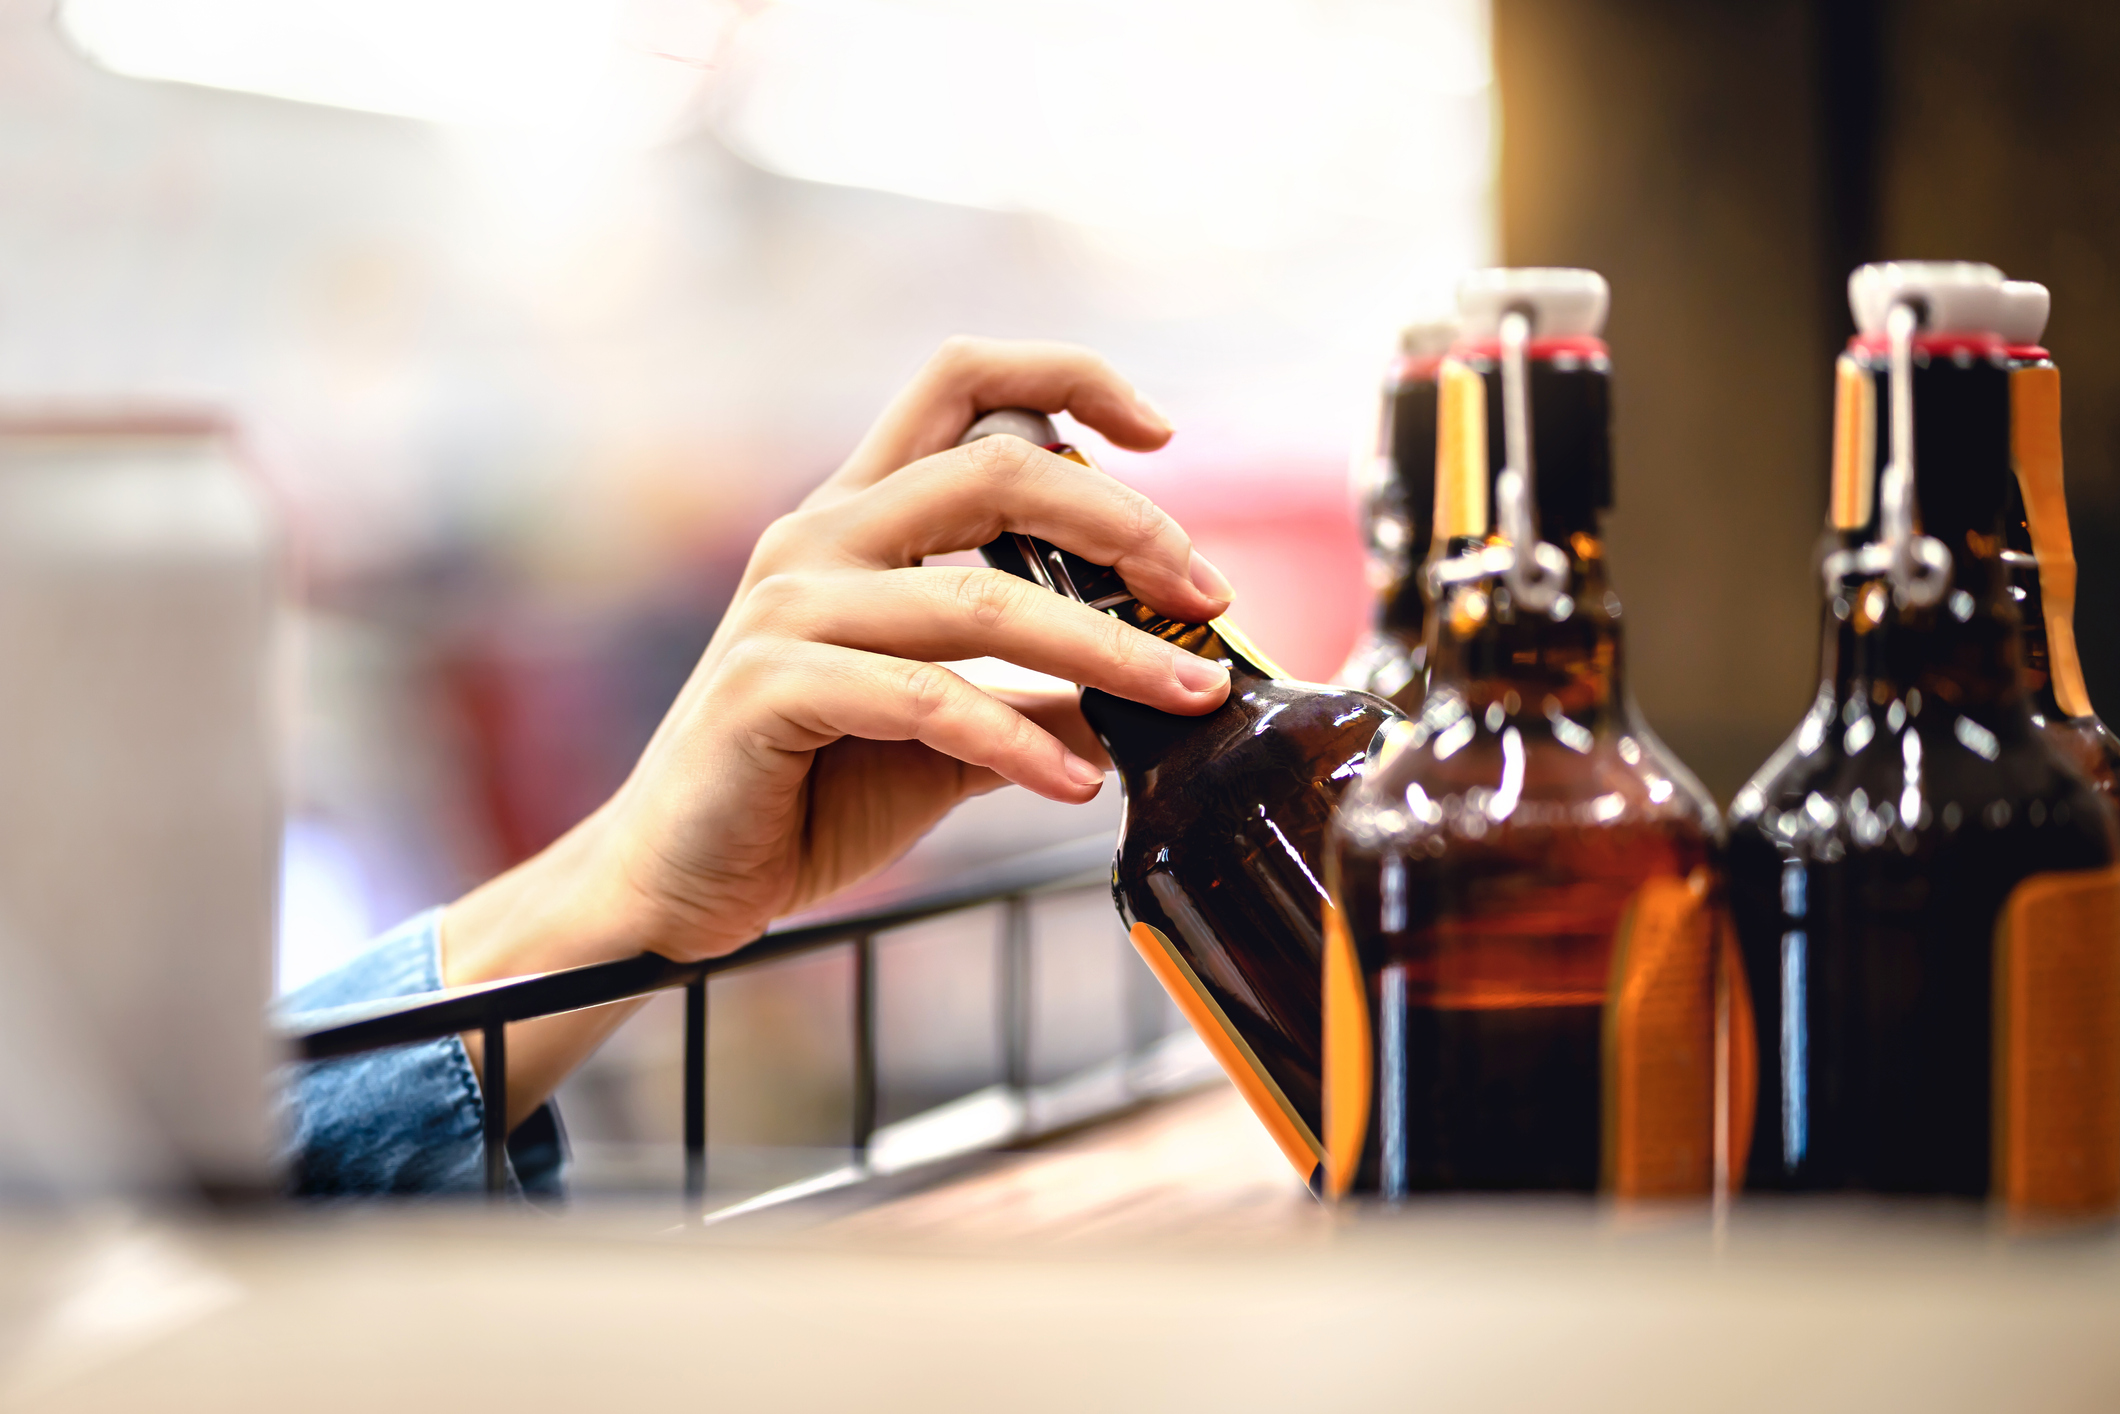 Coronavirus Will Have 'far-reaching' Impact On Alcohol: 5 Emerging Consumer Trends photo